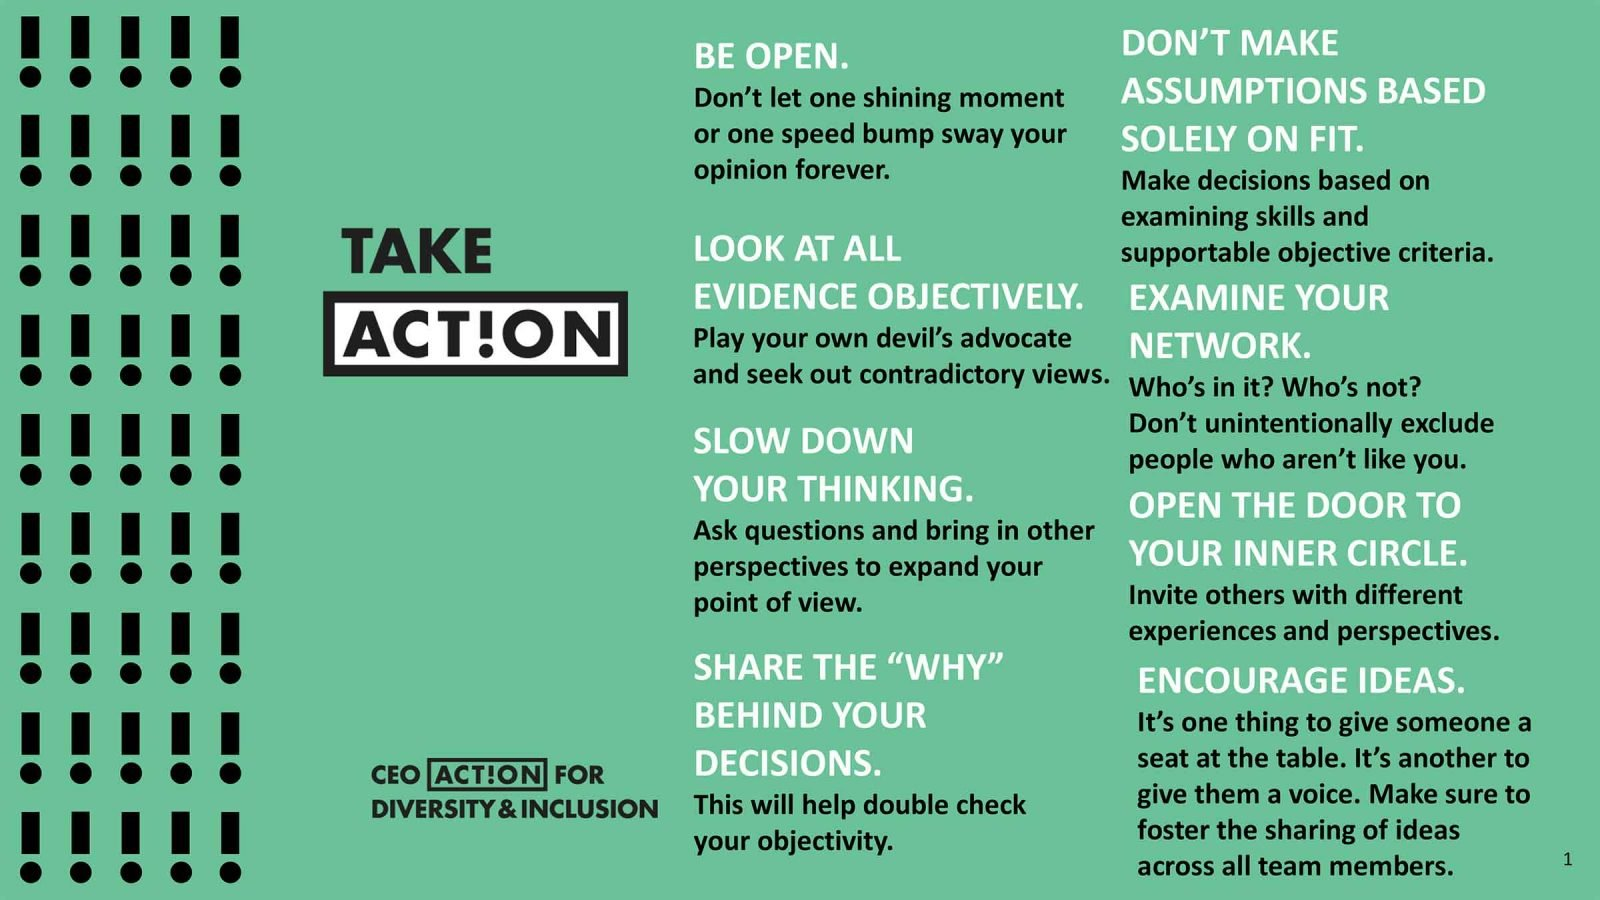 8 CEO Actions